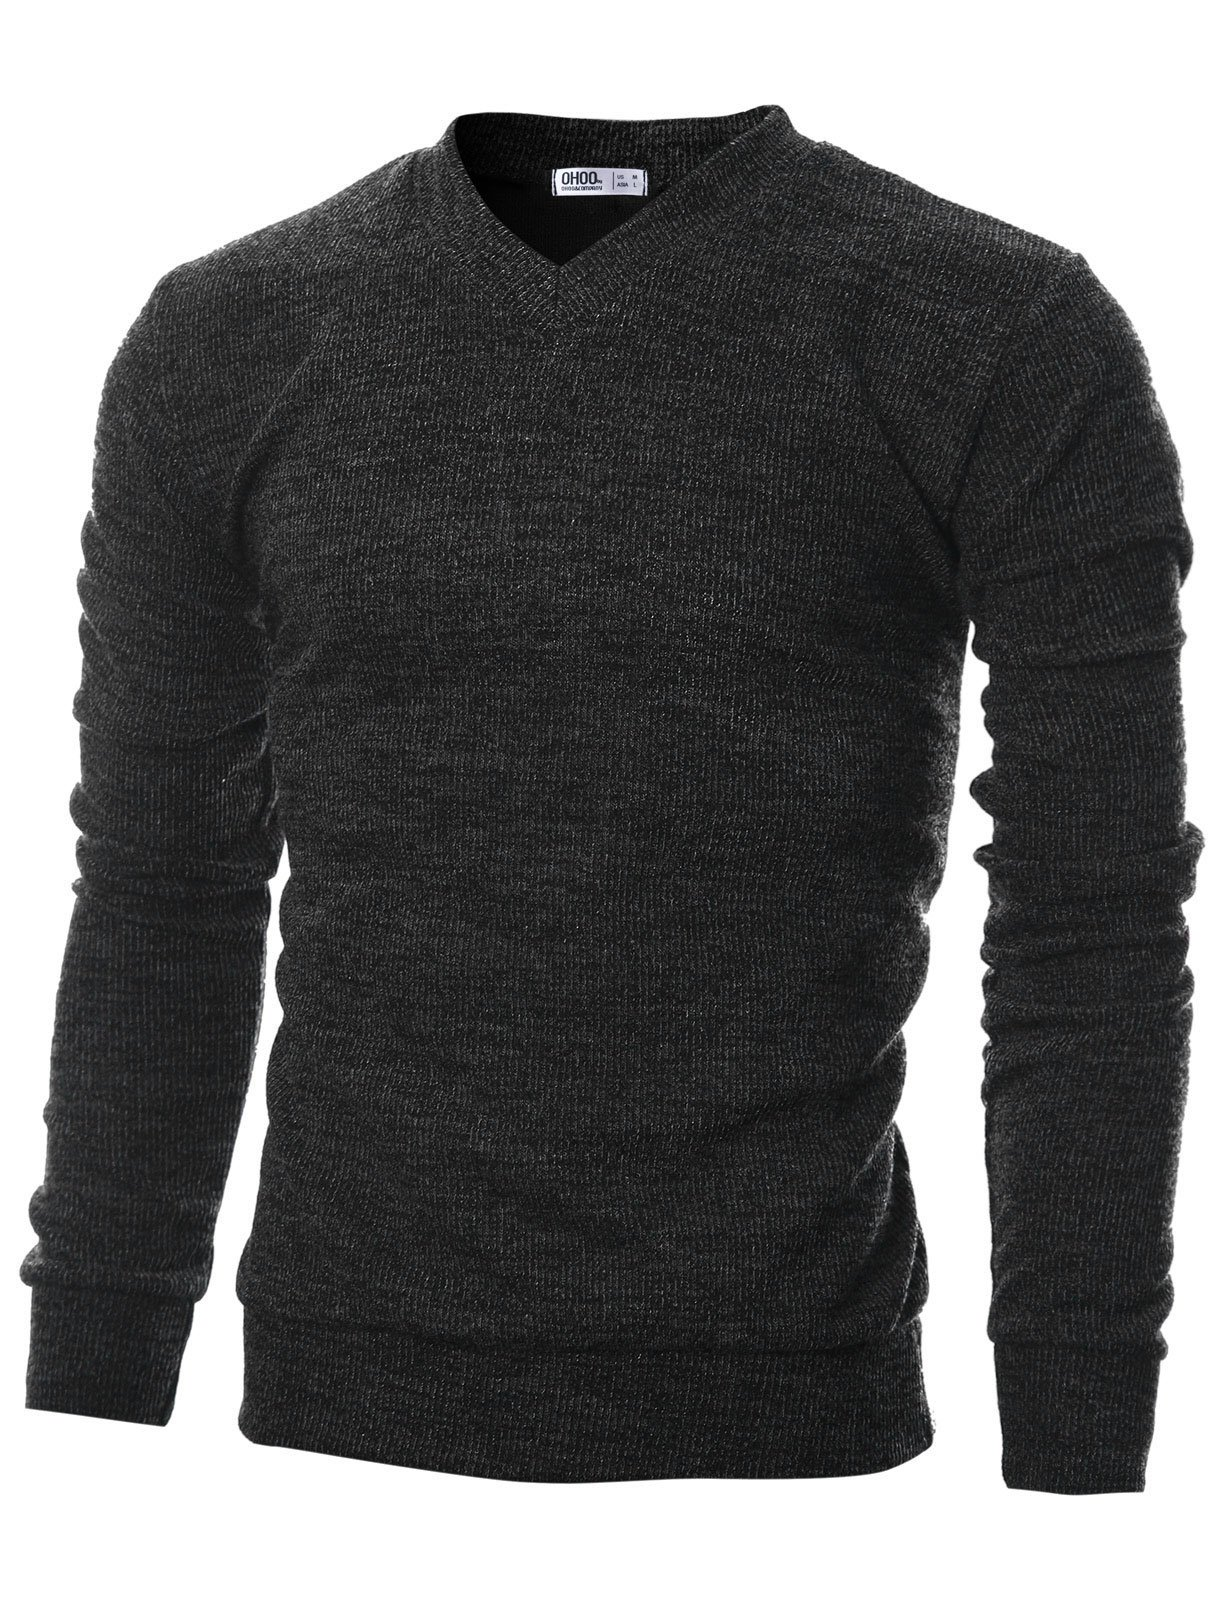 Ohoo Mens Slim Fit Ribbed Fabric Light Weight V-Neck Pullover Sweater/DCP045-CHARCOAL-M